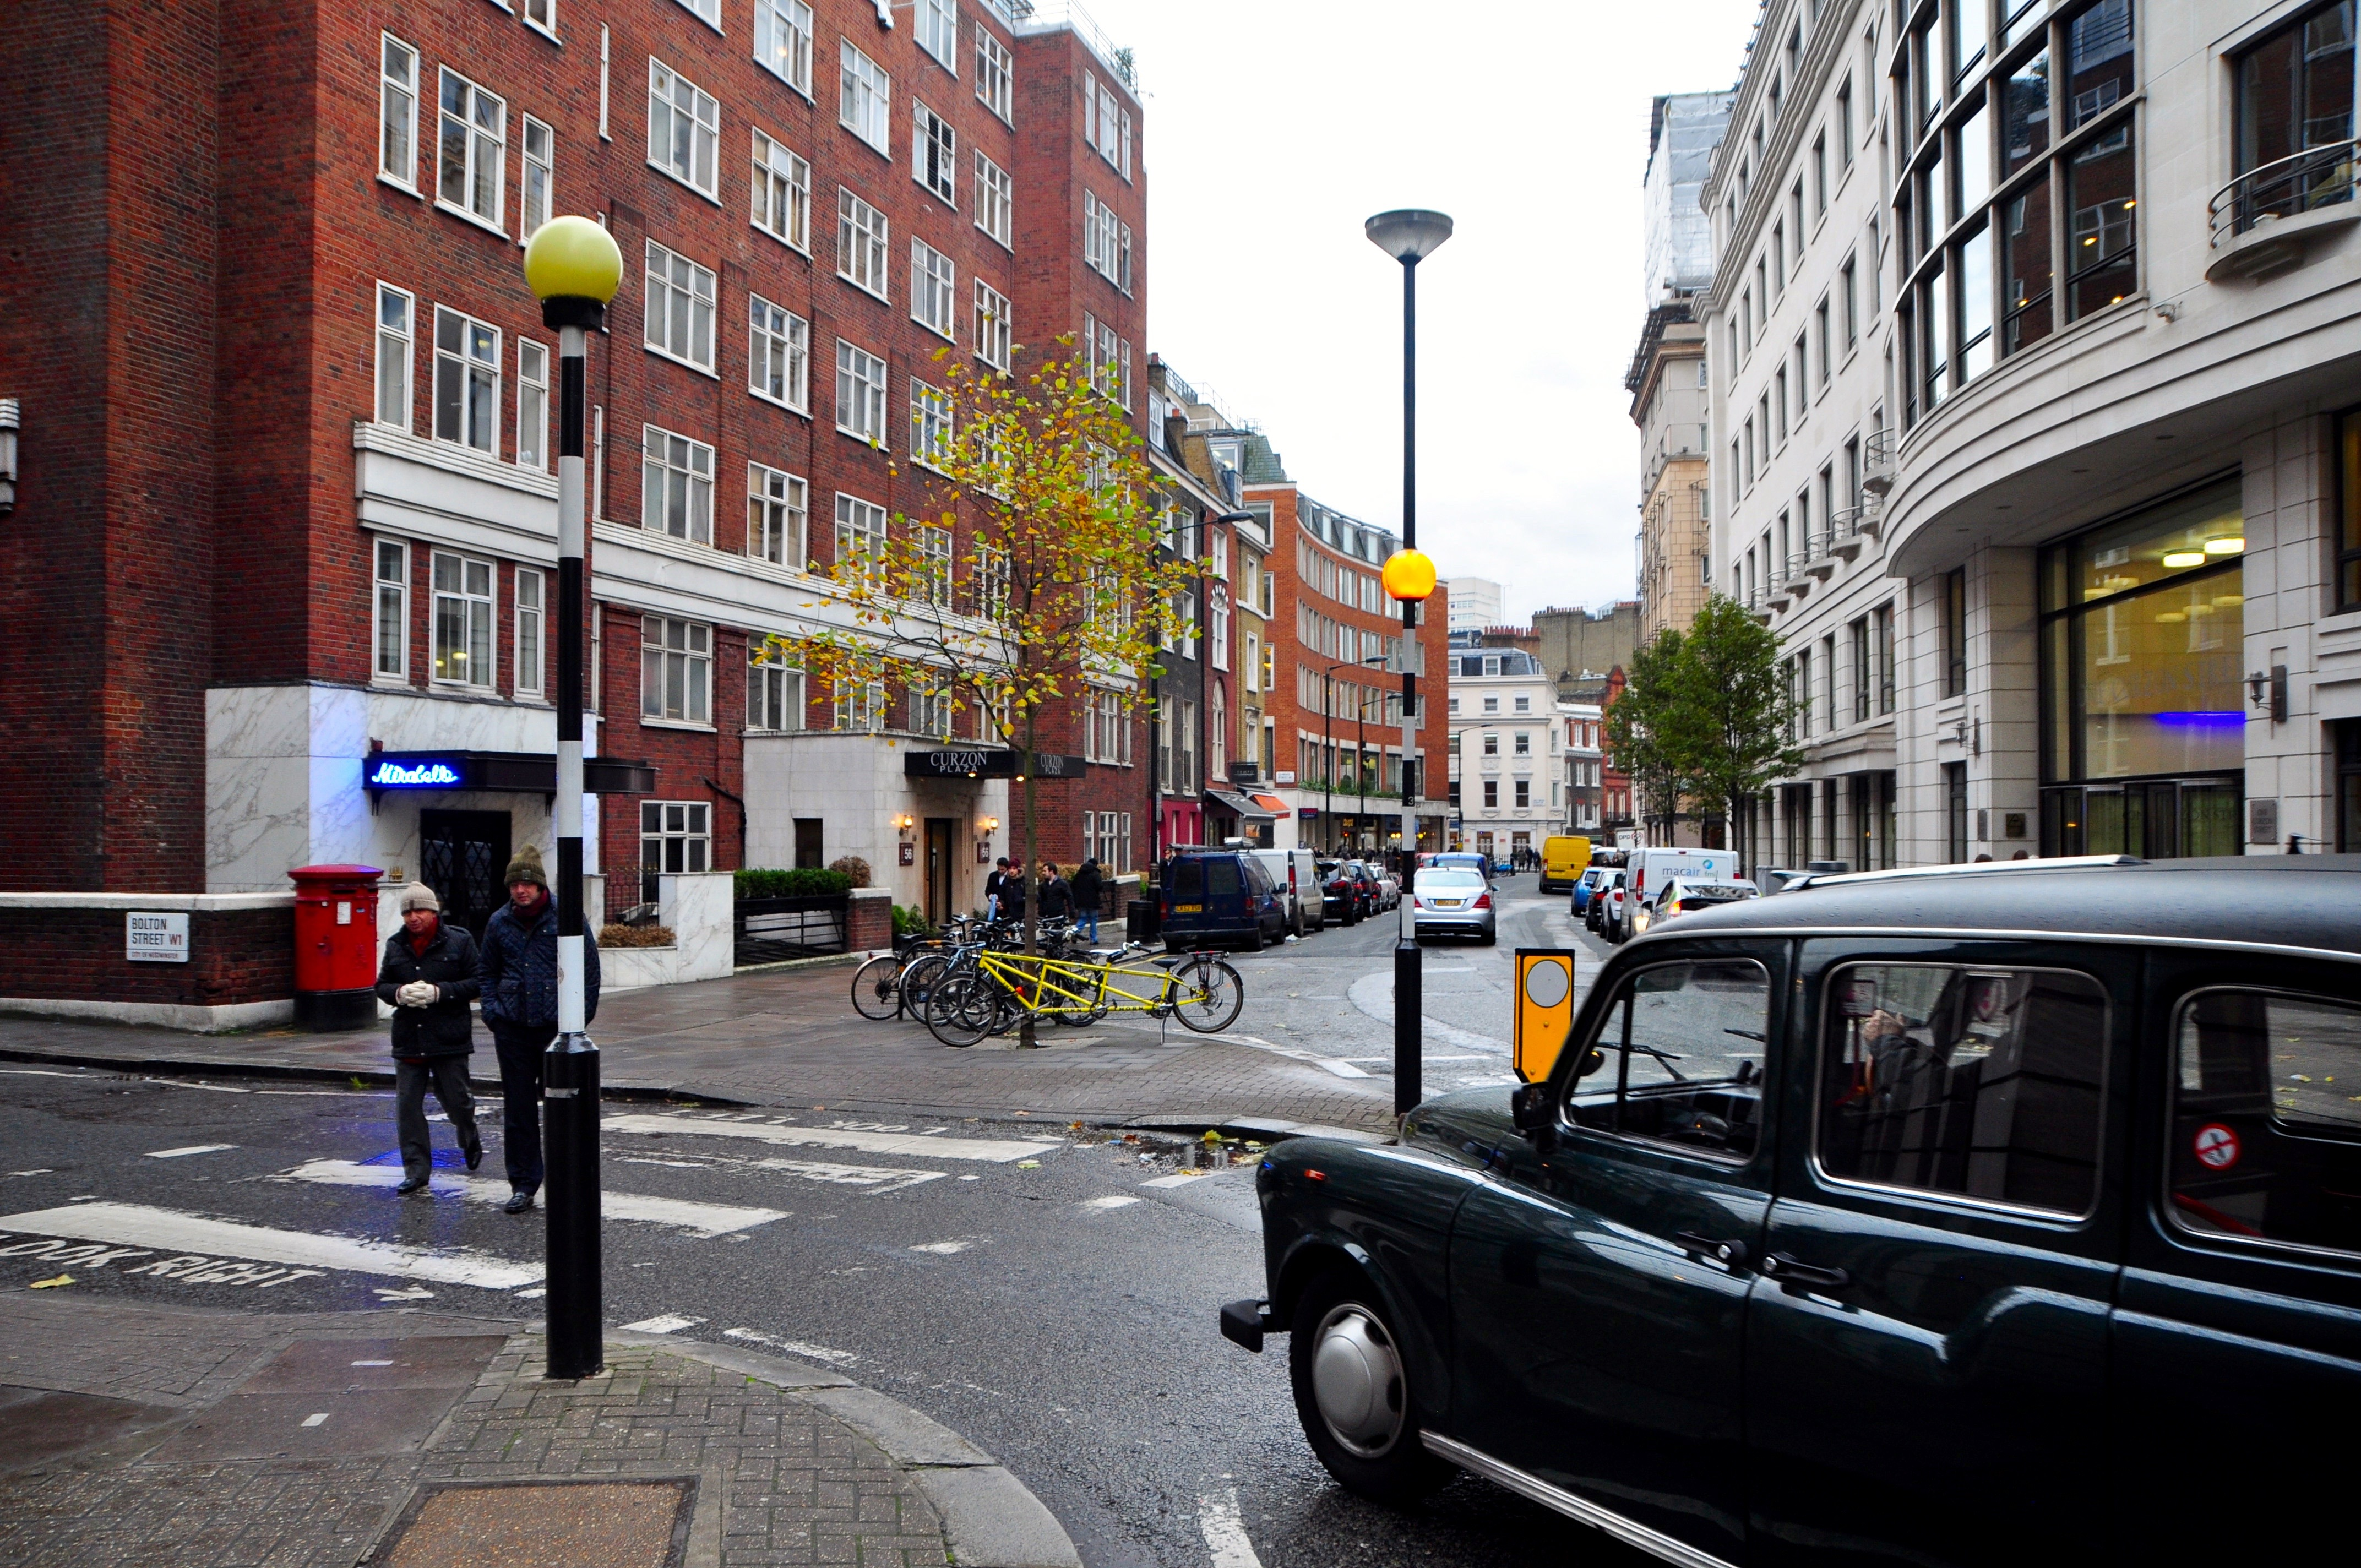 A hackney carriage in London